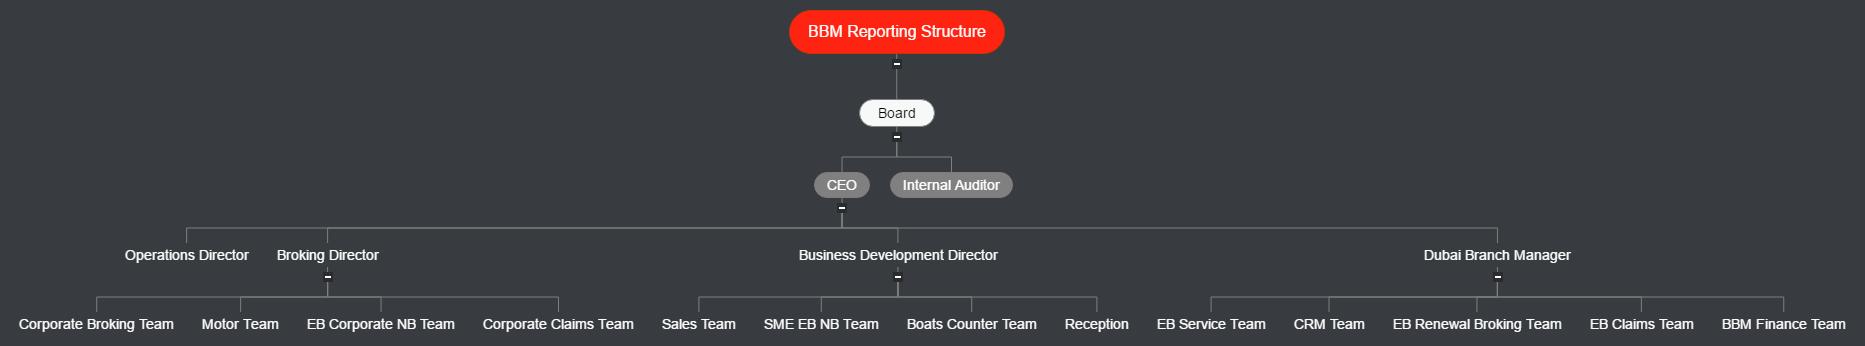 BBM Reporting Structure Mind Map